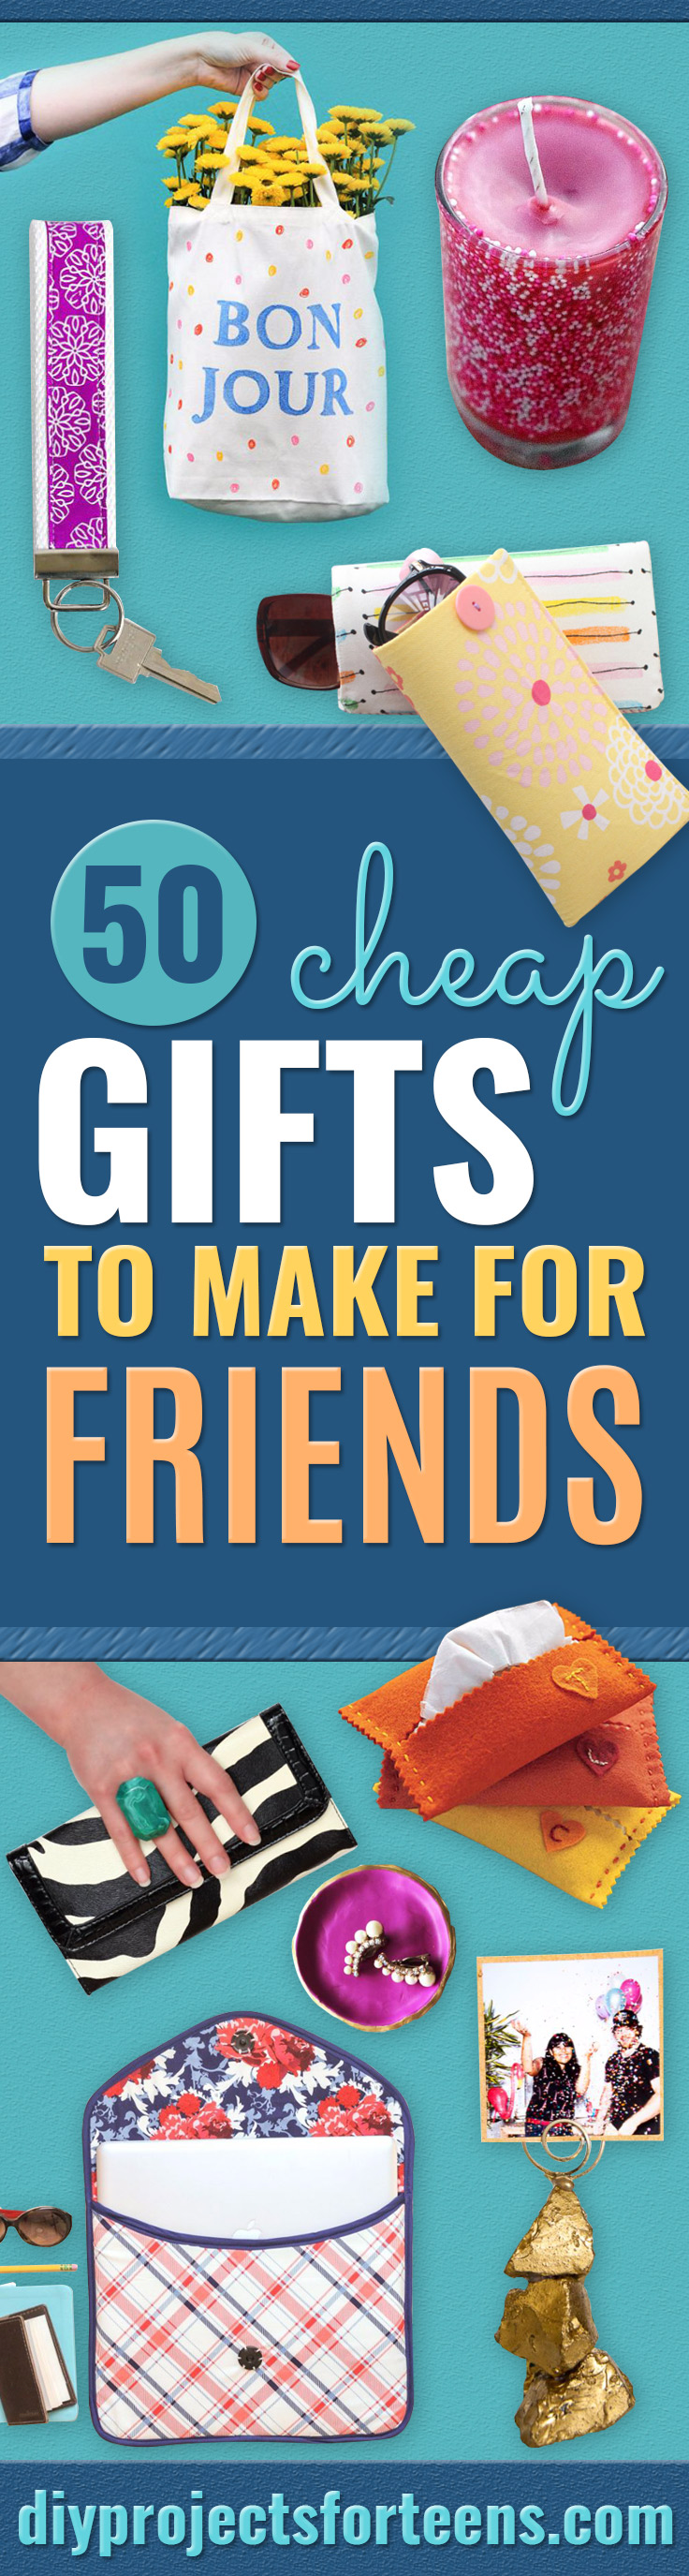 Diy Gifts And Inexpensive Homemade Christmas Gift Ideas For People On A Budget To